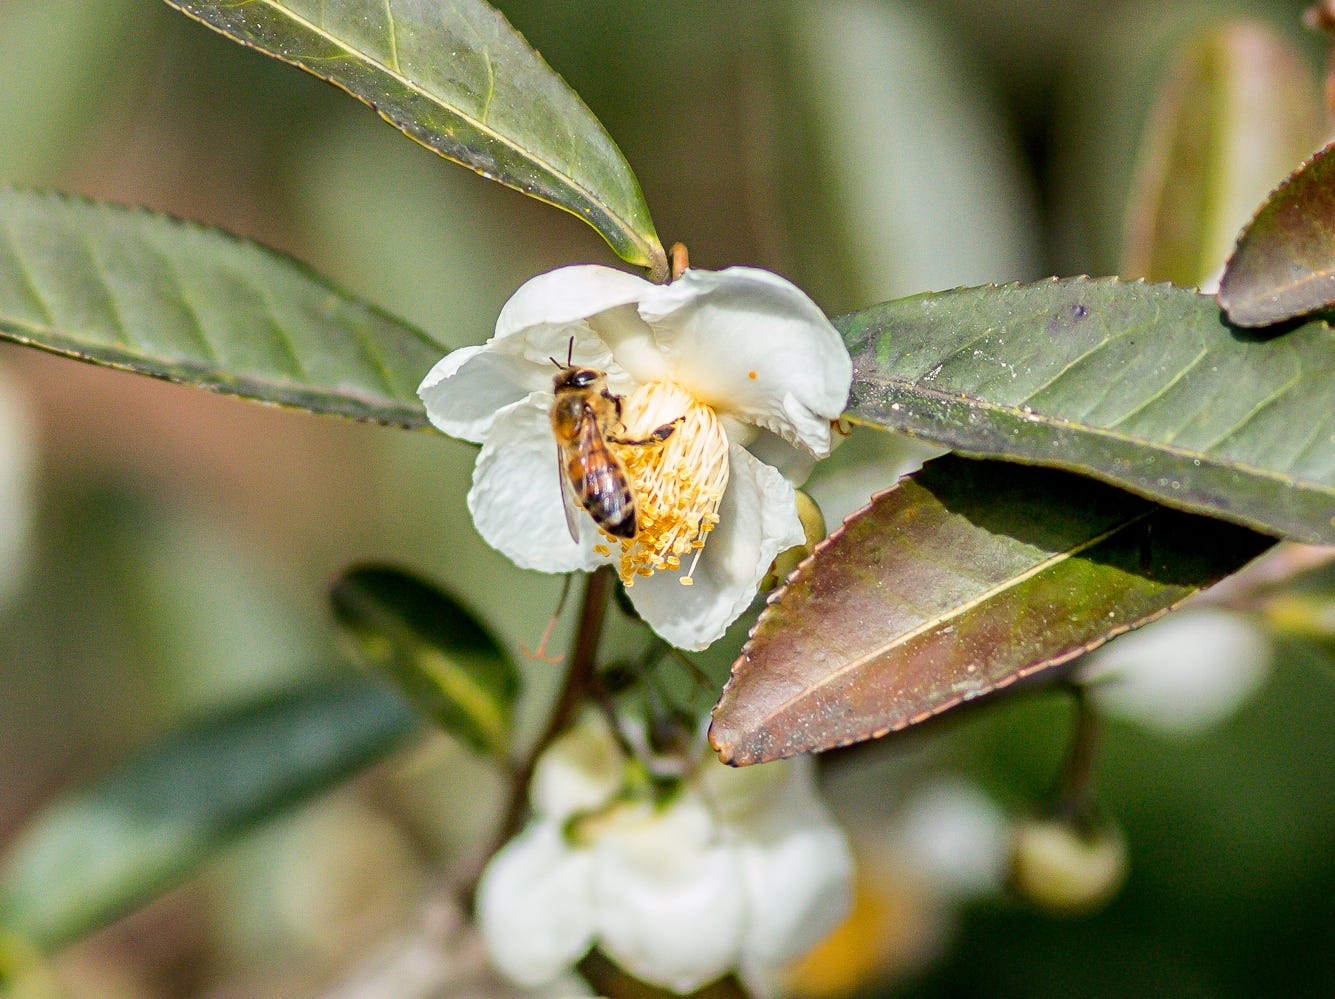 A bee pollinates a blooming camellia in the University of West Florida's Camellia Garden on Wednesday, November 28, 2018. The garden is located just east of Building 41 for Pyschology and Behavioral Sciences.